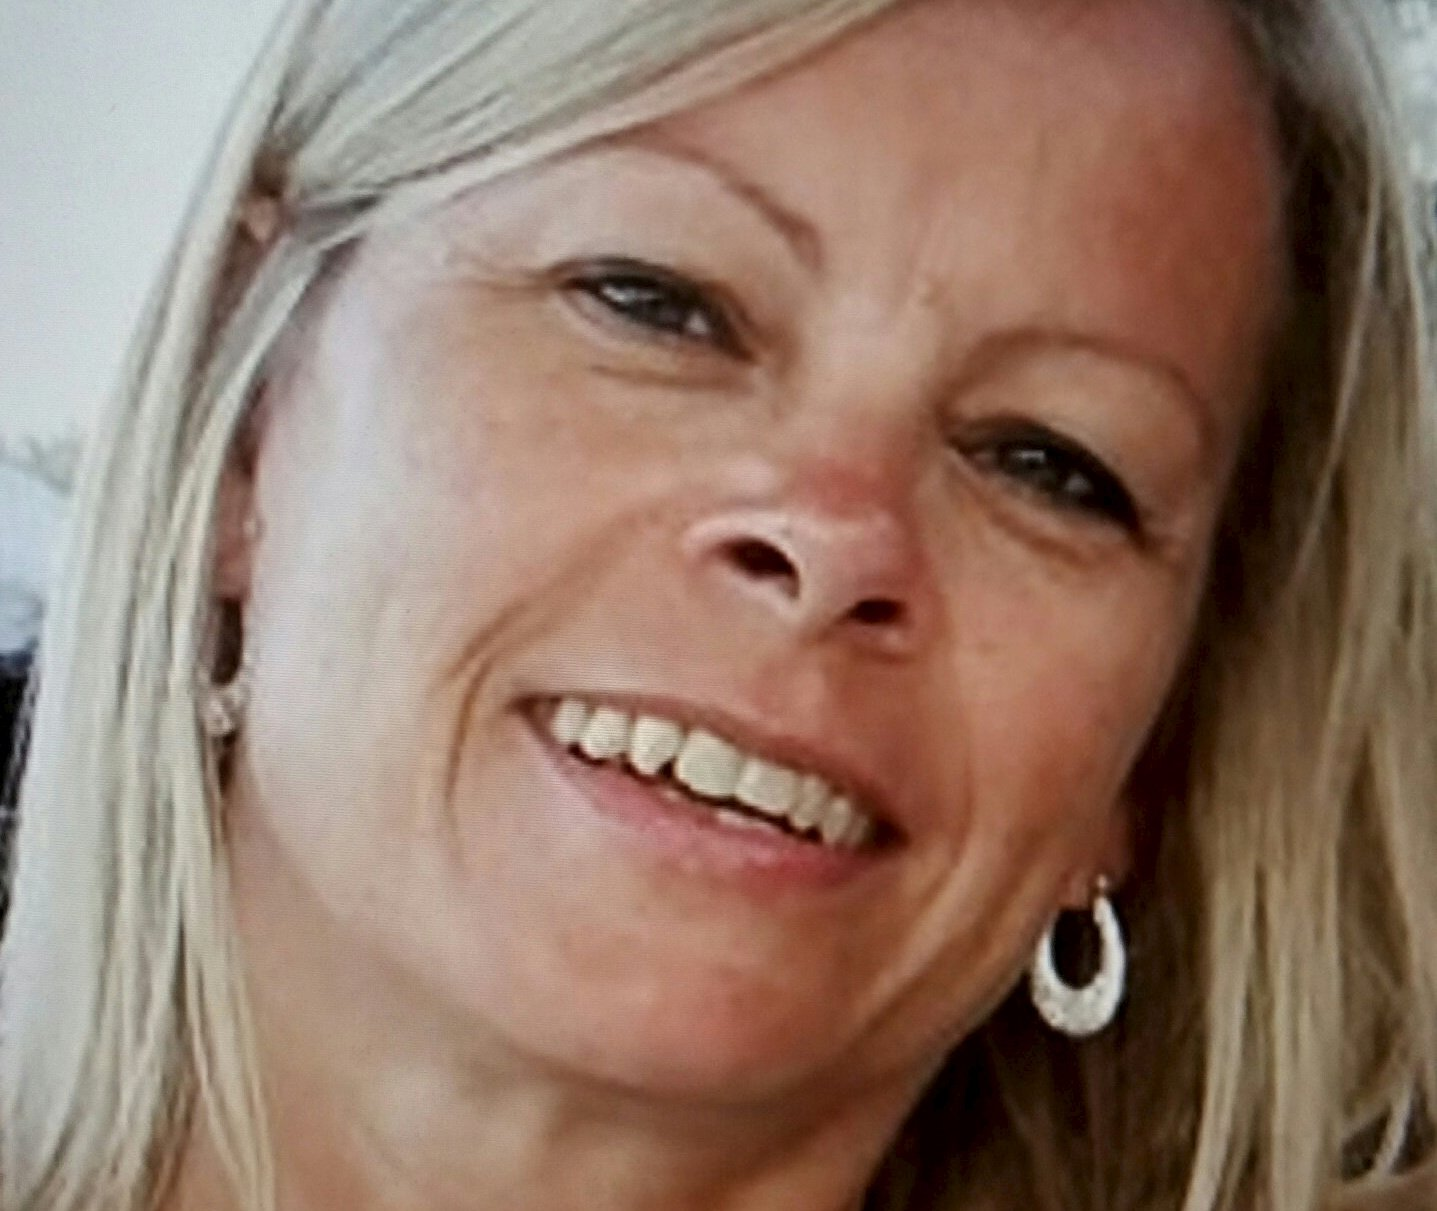 Tina Cantello, 49, a door-to-door debt collector who was found dead in Basildon, Essex. See Masons copy MNBODY: A man has been arrested on suspicion of murder after a body was discovered in the search for a mum who went missing while working as a door-to-door debt collector. Tina Cantello, 49, disappeared while she was out finishing her rounds as a loan collector on Friday in Basildon, Essex. But police called off the search for Ms Cantello after a woman's body was found on Saturday in a house about two miles from where her family believe she was last seen.